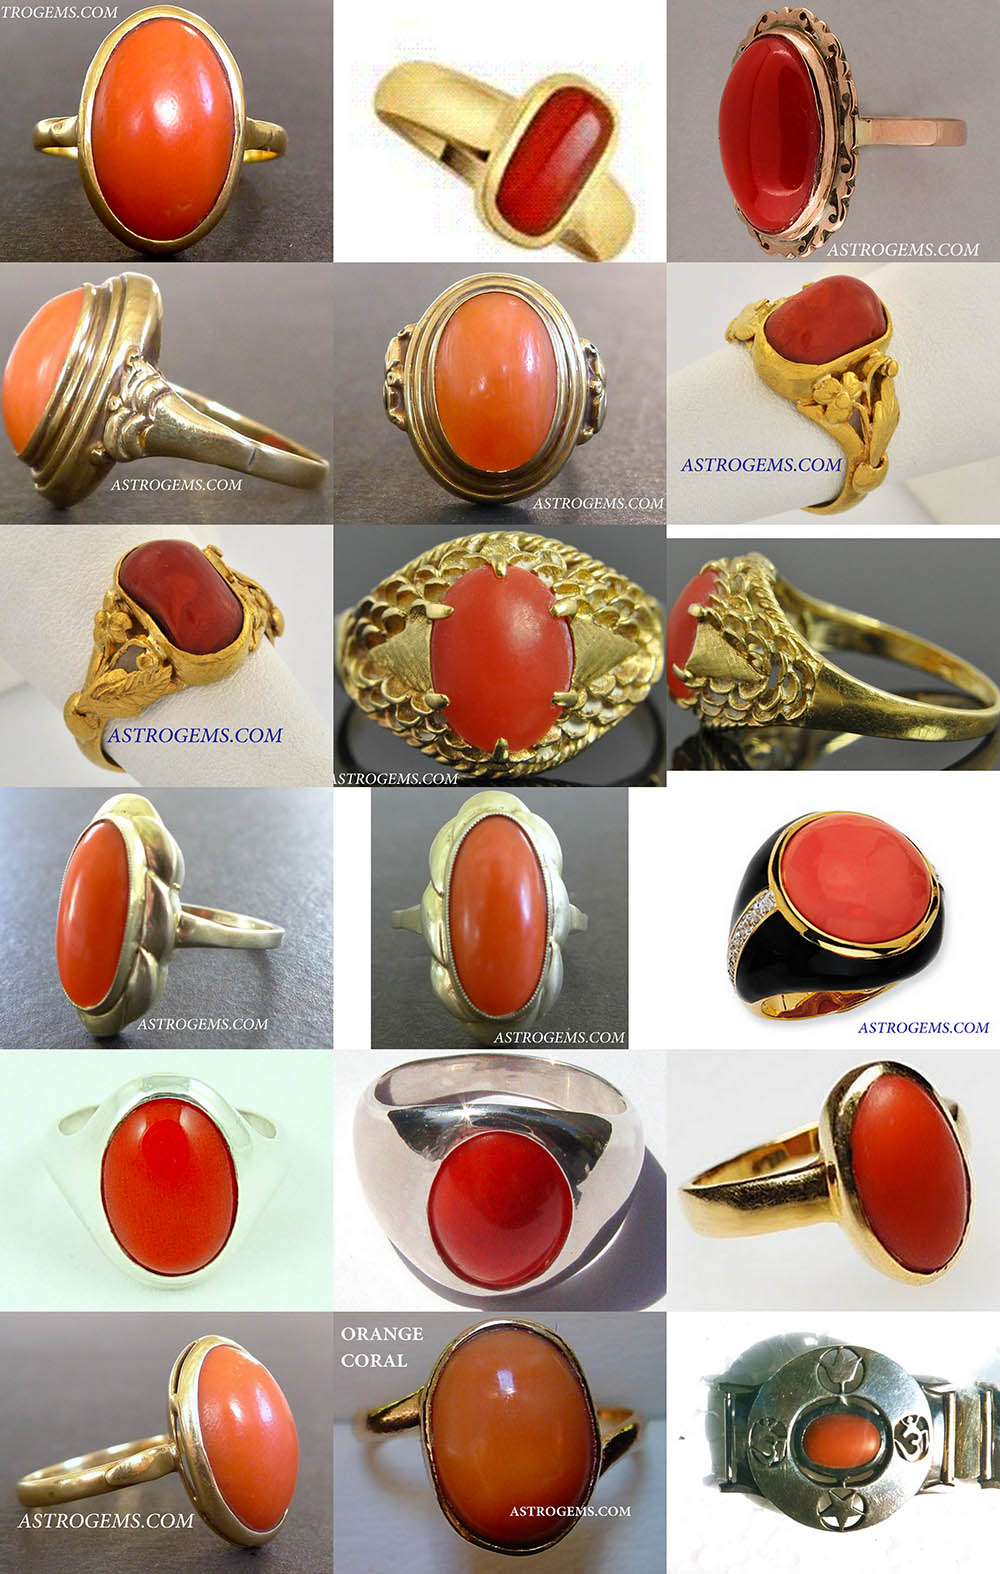 vedic red coral astrological rings